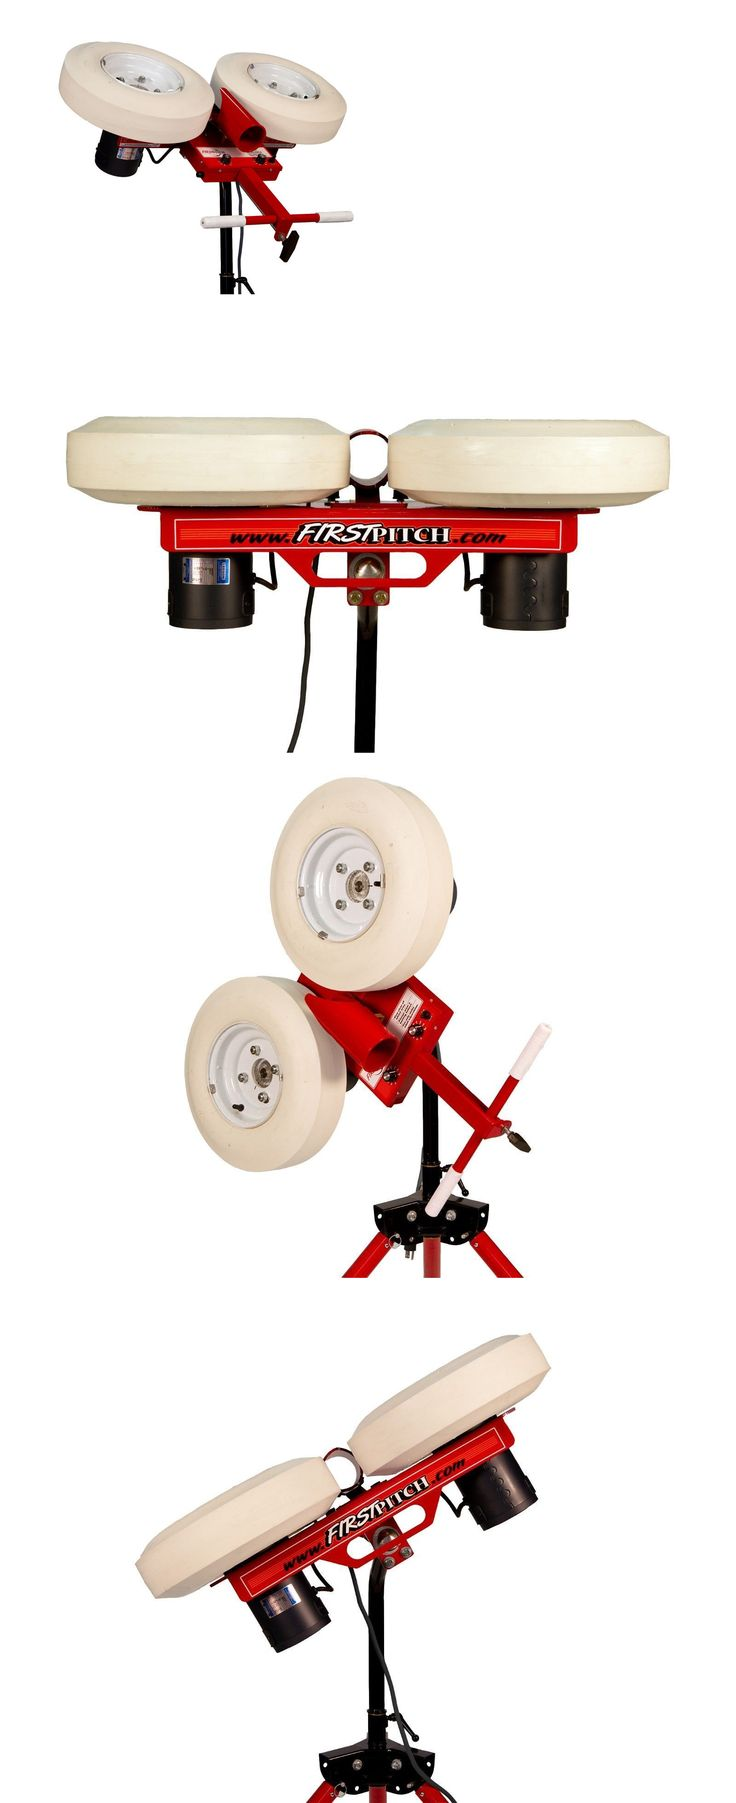 Pitching Machines 58061: Two Wheel First Pitch Curveball Softball Pitching Machine First Pitch Curve Rise -> BUY IT NOW ONLY: $1599 on eBay!